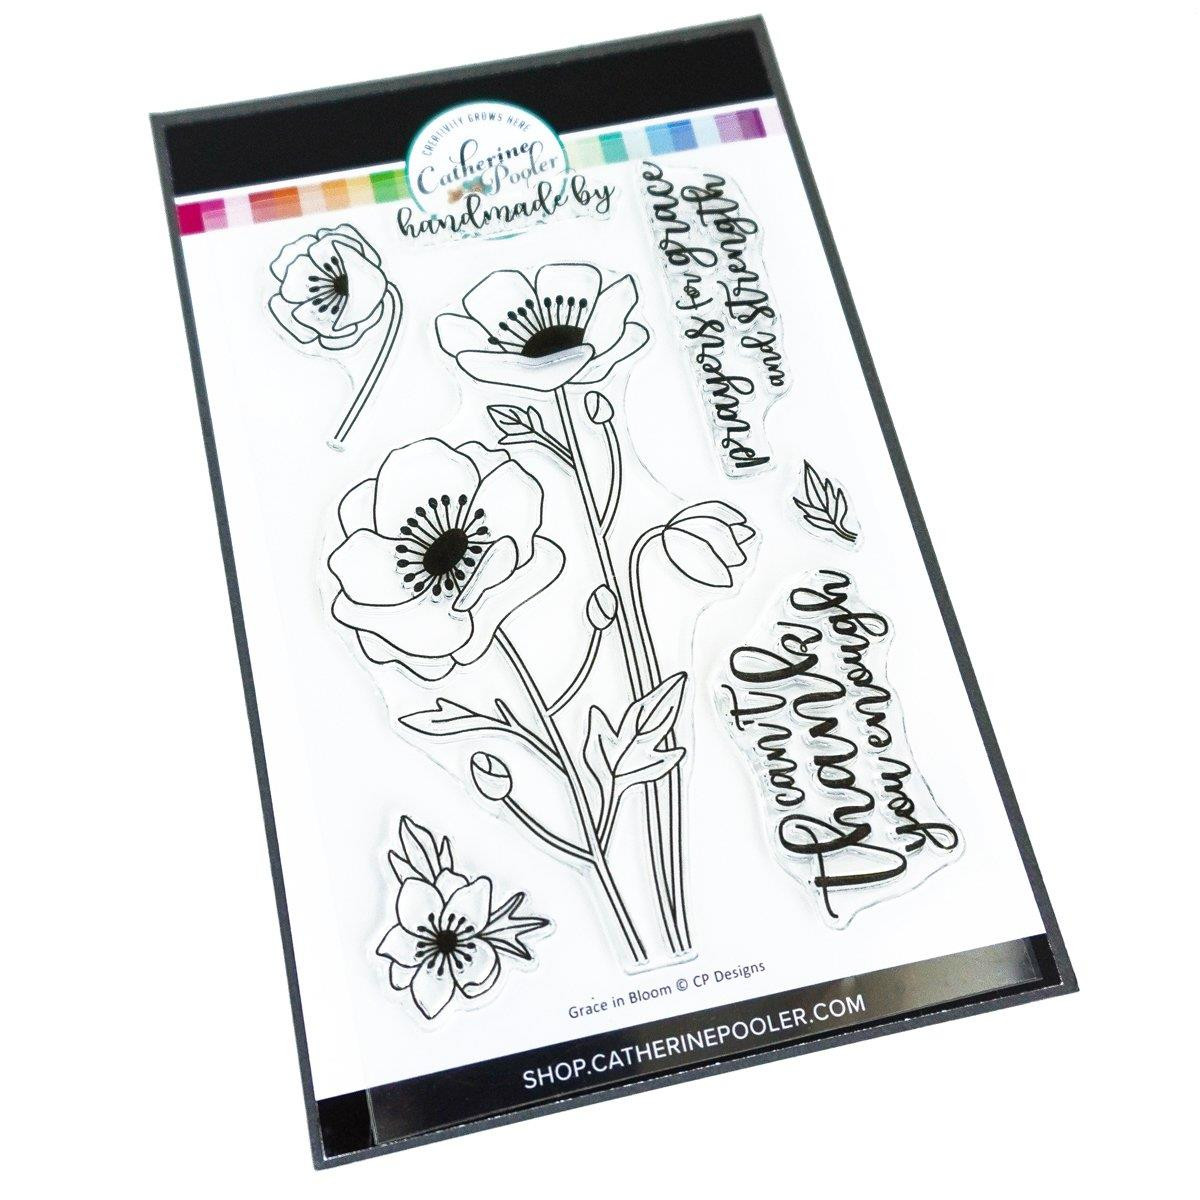 Grace in Bloom, Catherine Pooler Clear Stamps - 819447025770